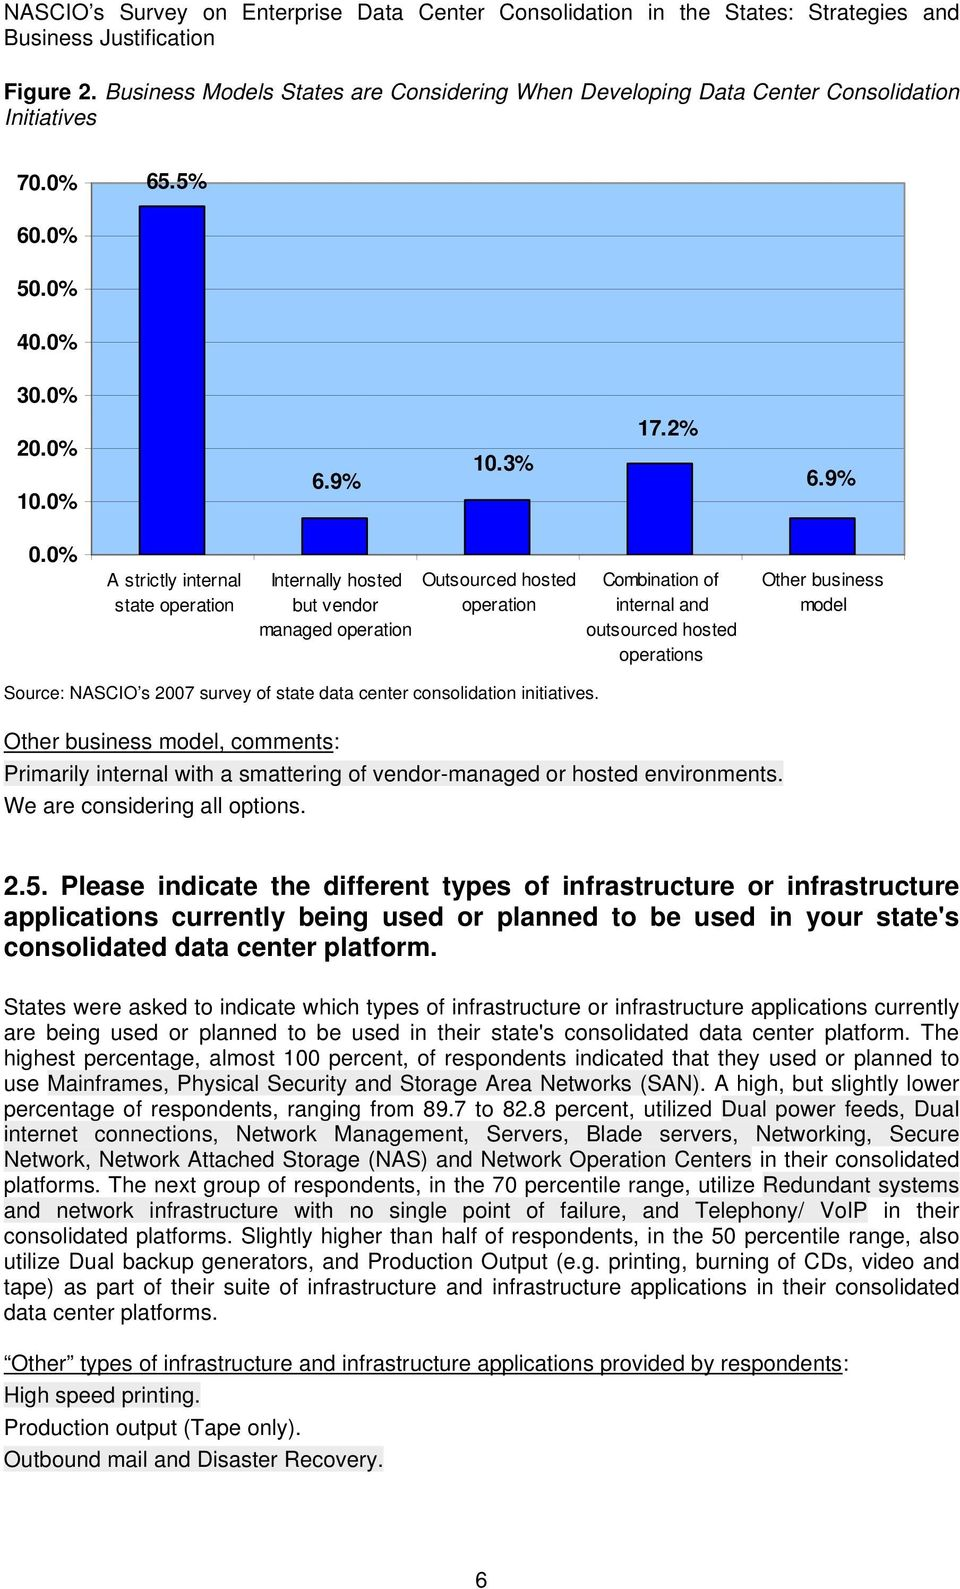 NASCIO s 2007 survey of state data center consolidation initiatives. Other business model, comments: Primarily internal with a smattering of vendor-managed or hosted environments.